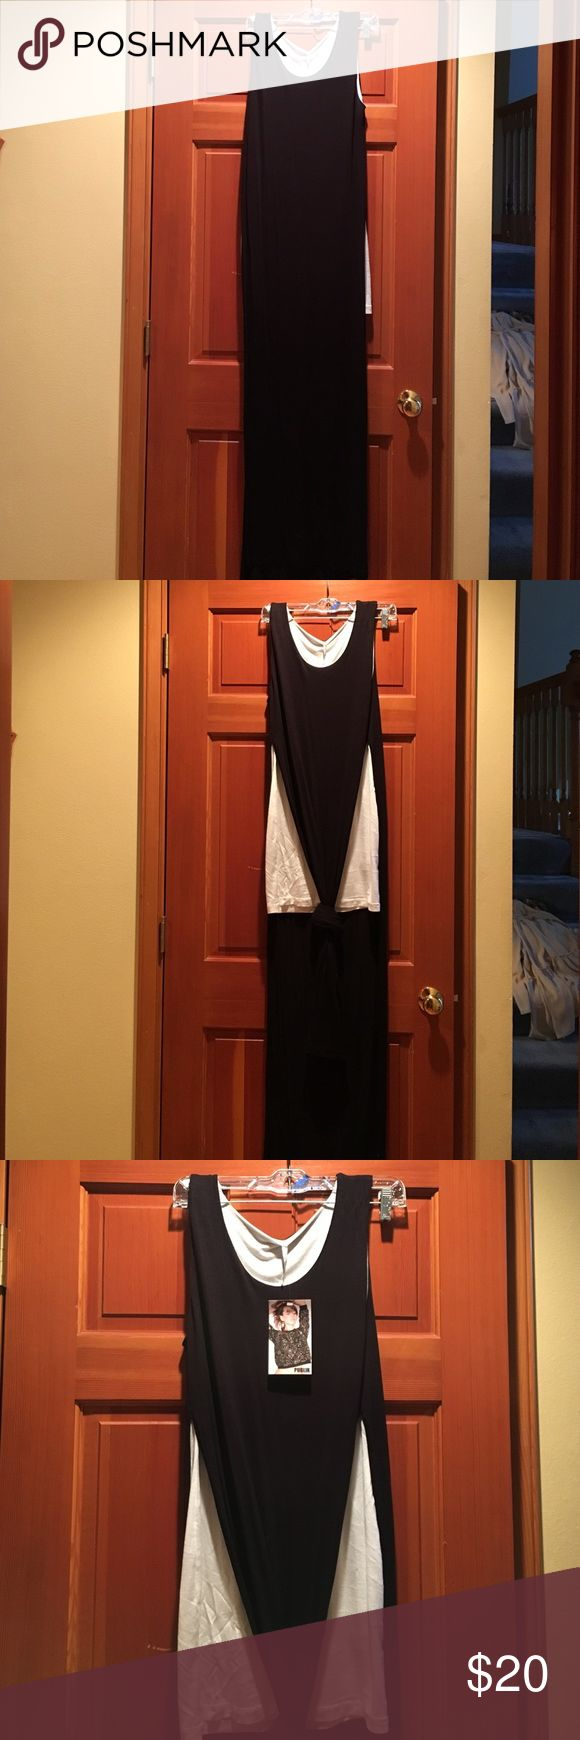 Long maxi black dress with slits Long black maxi dress with large slits but lined with a shorter white dress to be worn as a dress alone or over jeans as well. Brand new, never worn. Dresses Maxi